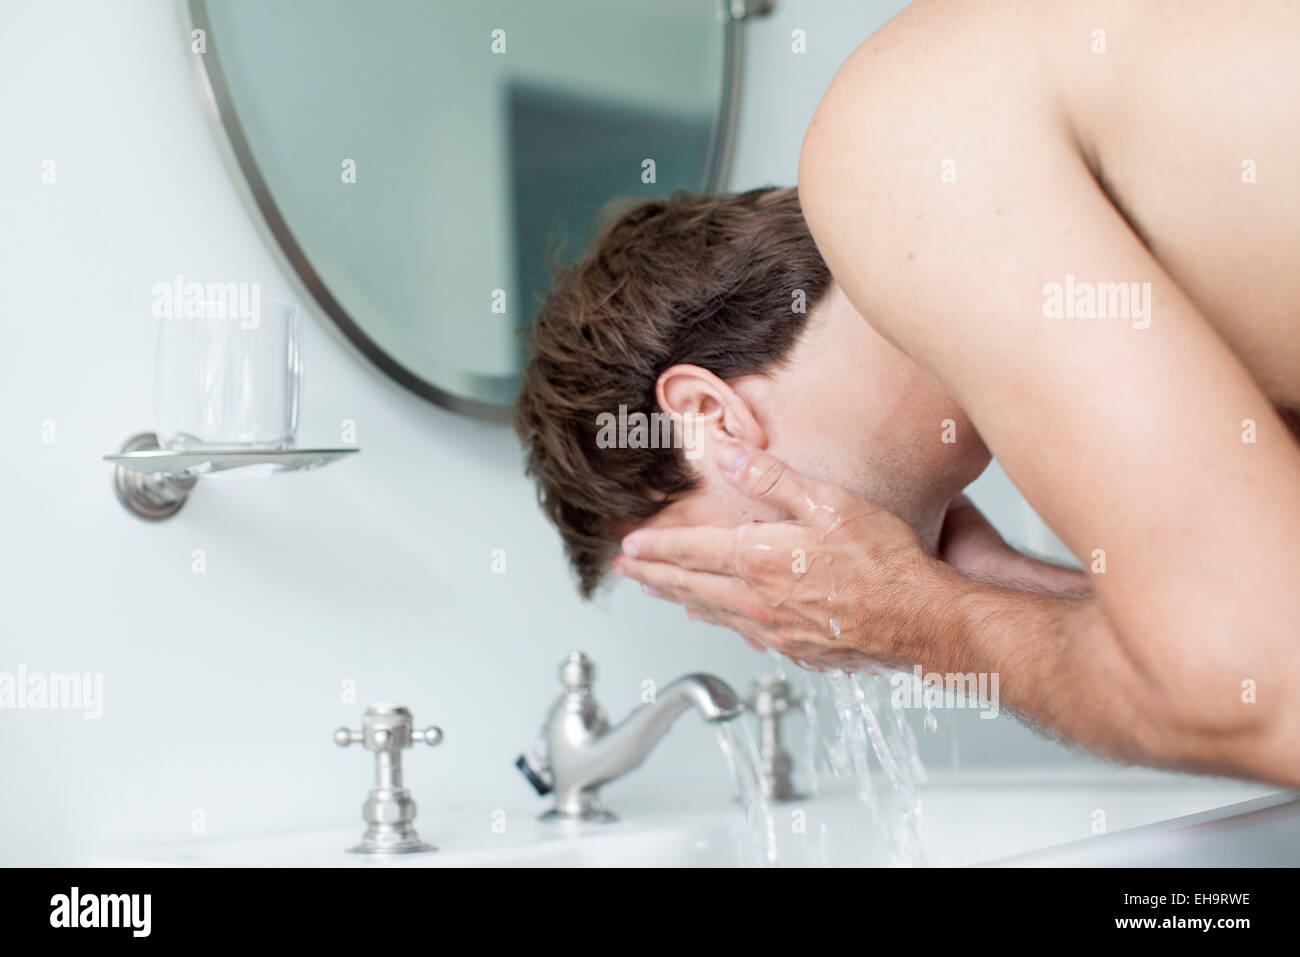 Man washing face in bathroom sink - Stock Image